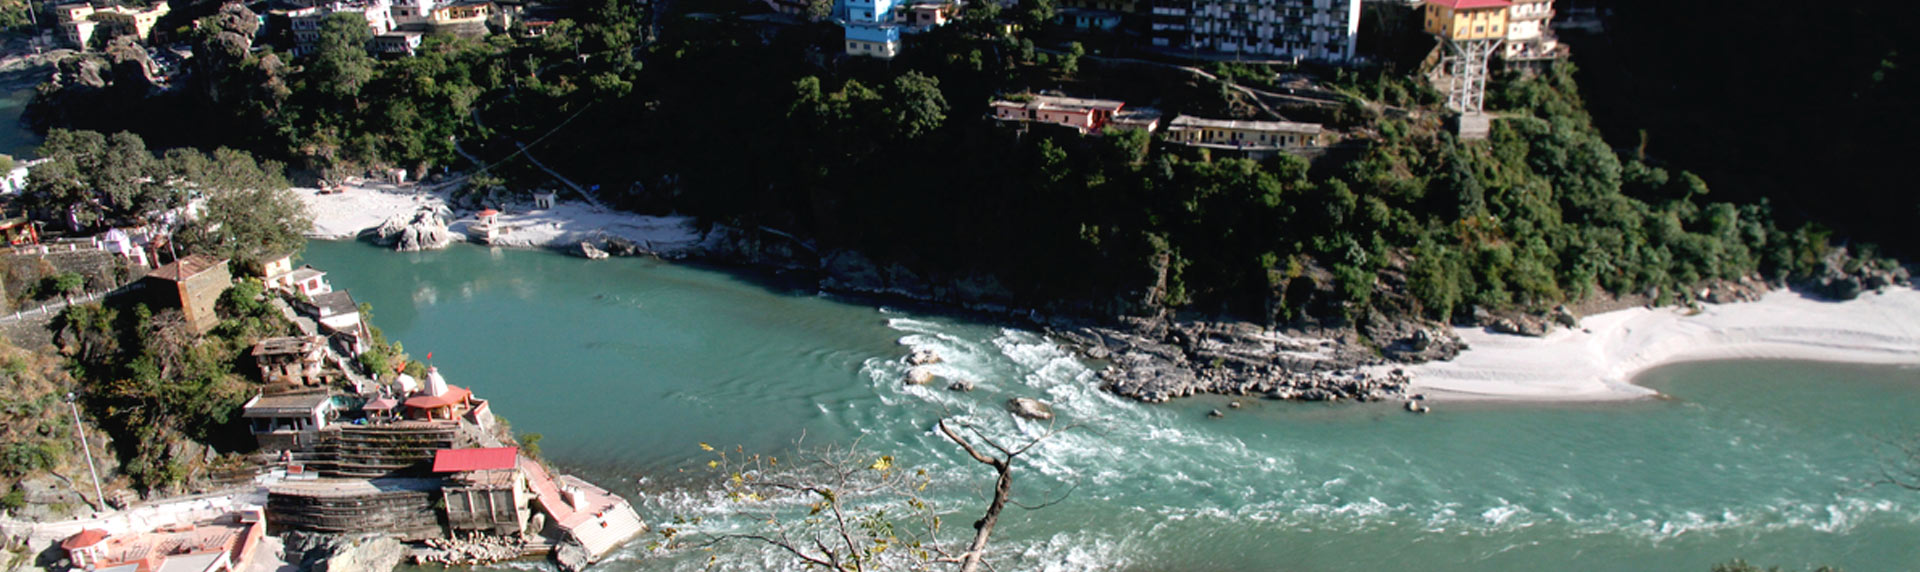 Rudraprayag sangam of Alaknanda and Mandakini river is one of the Panch Prayag in Uttarakhand